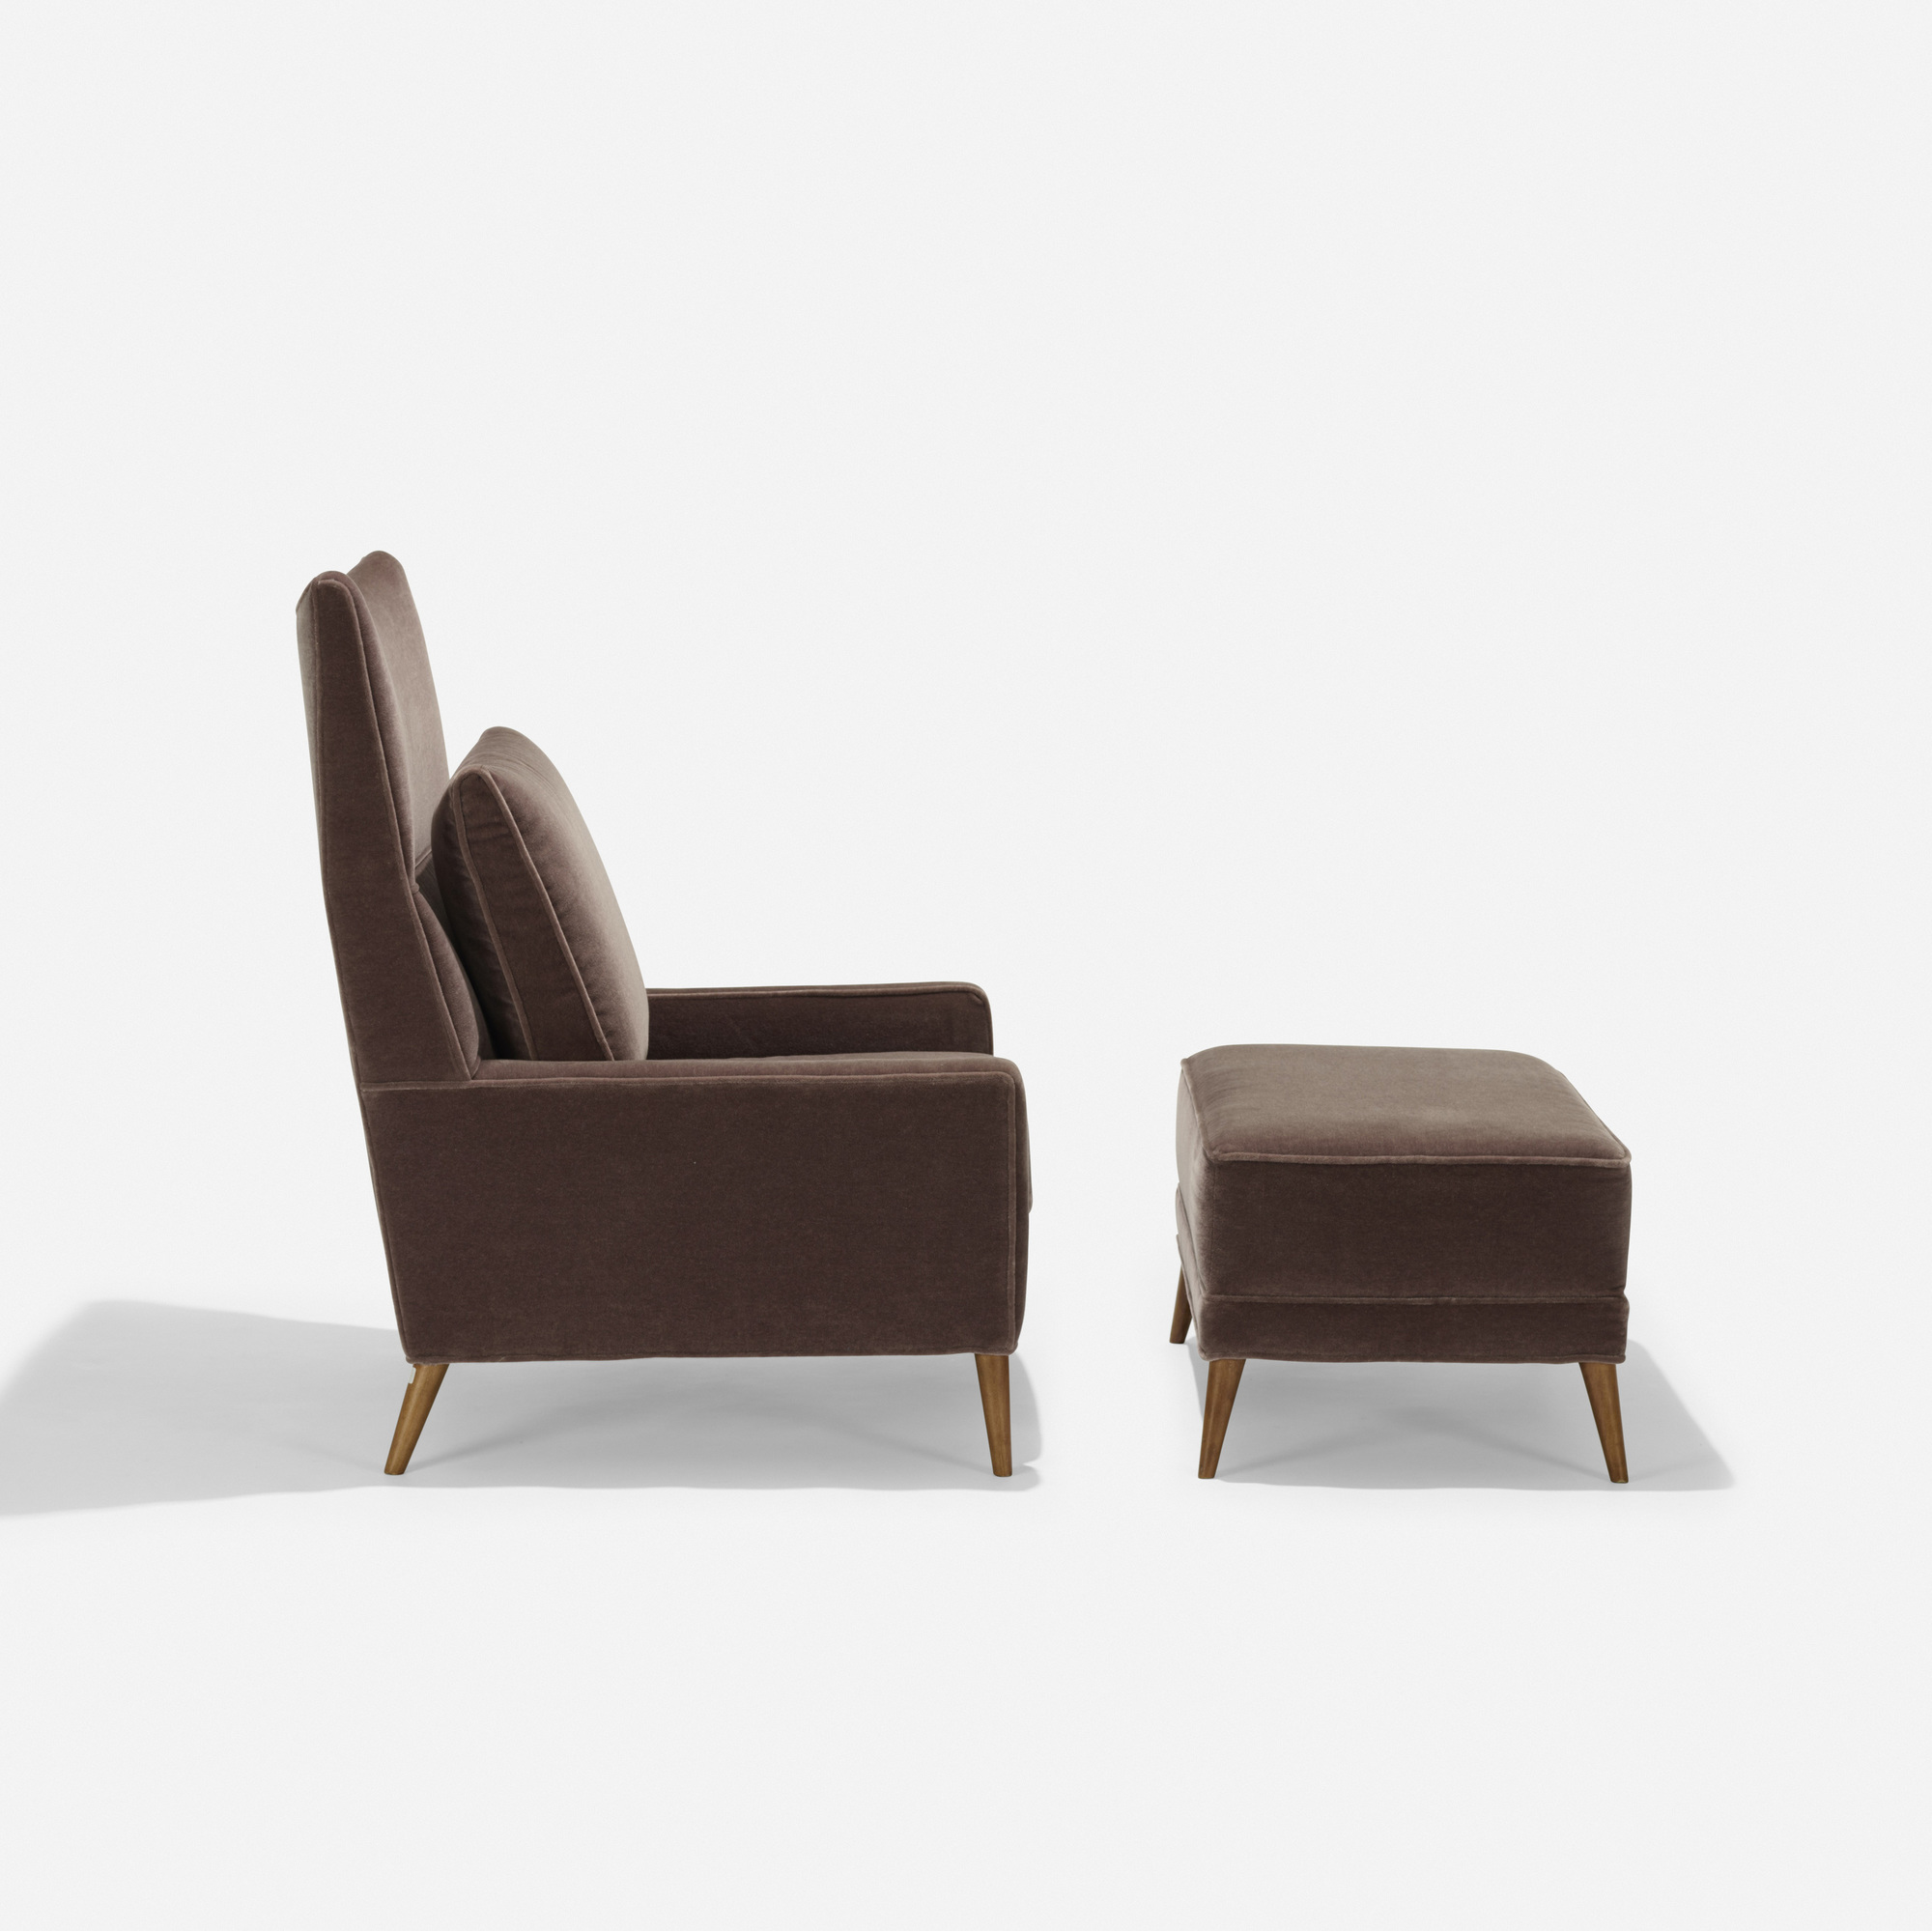 192: Paul McCobb / lounge chair and ottoman, model 314 (2 of 2)